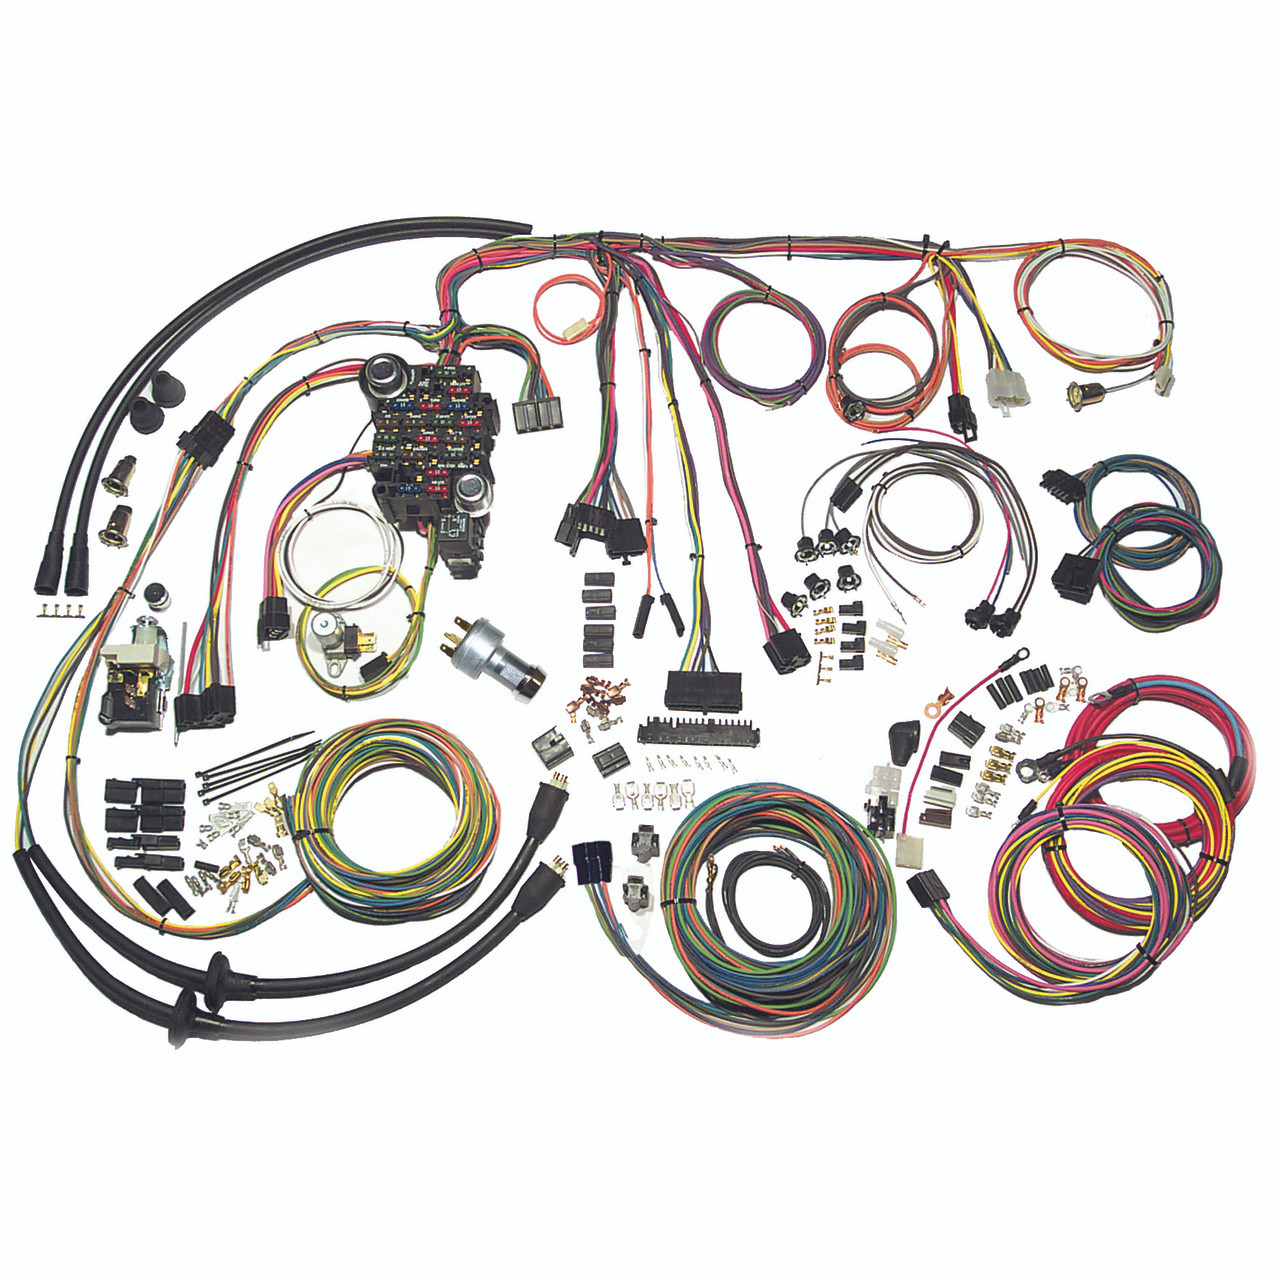 american autowire 1957 chevrolet car classic update complete wiring kit ame 500434 [ 1280 x 1280 Pixel ]